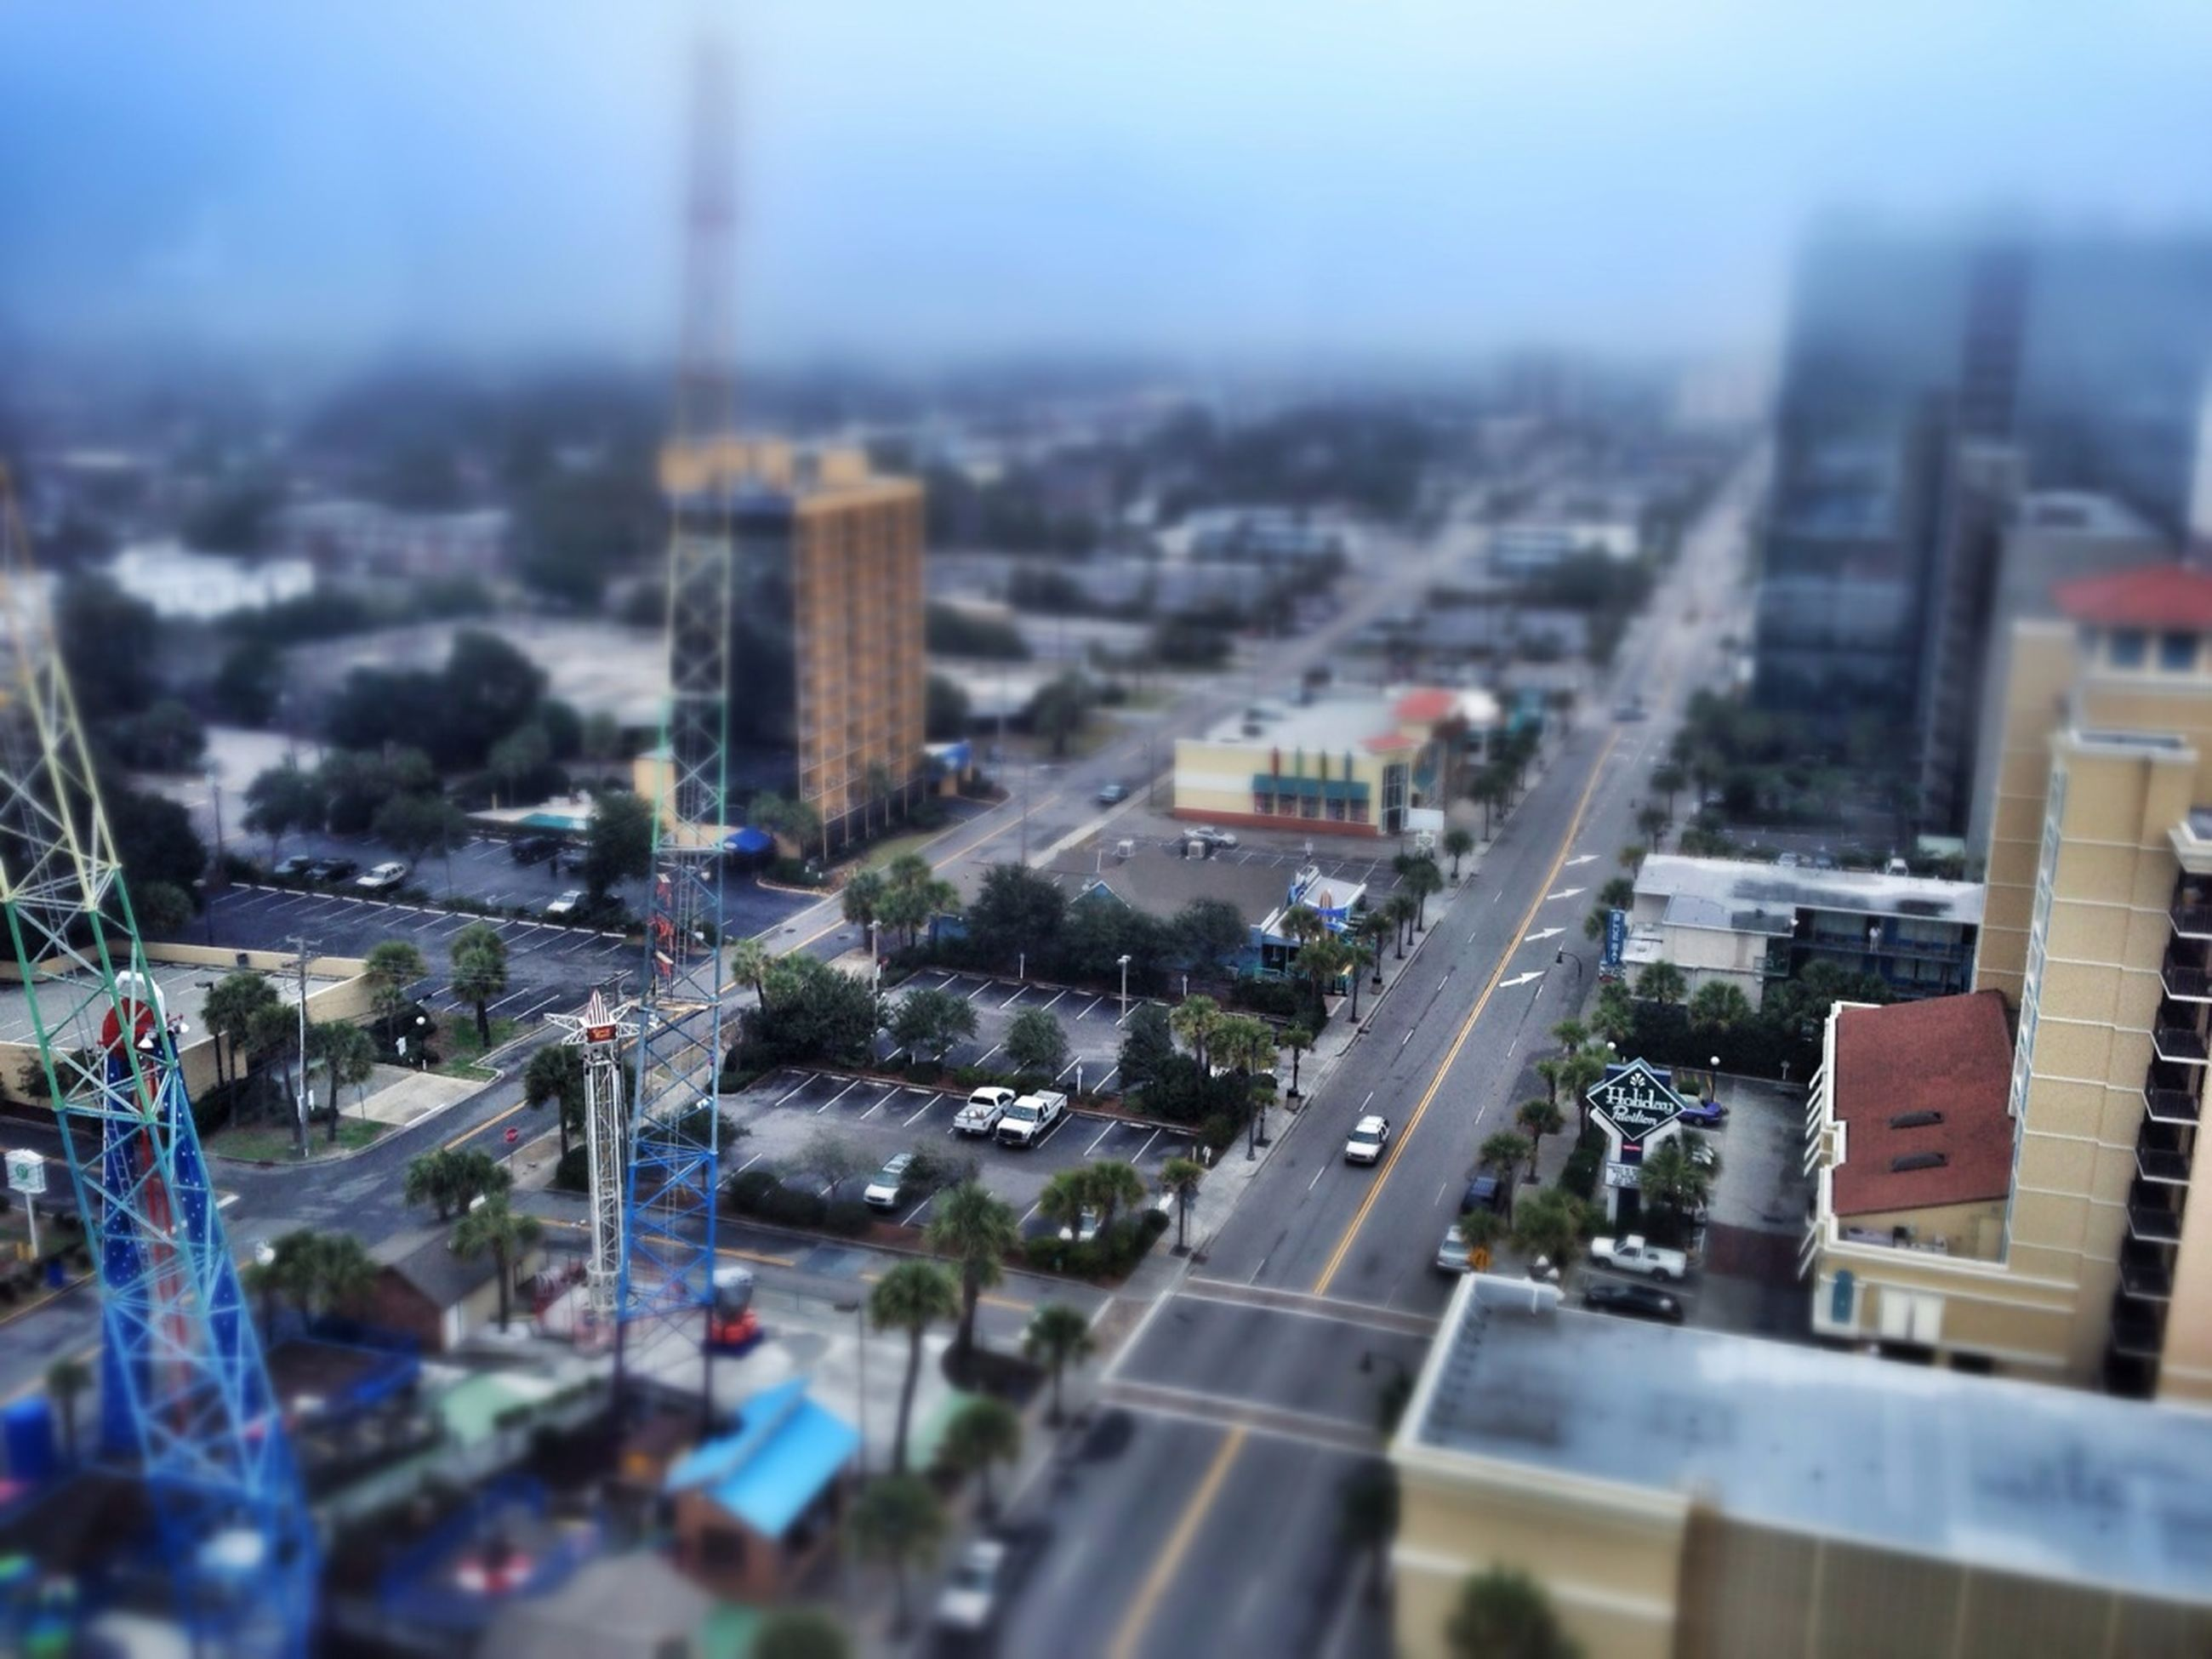 building exterior, architecture, city, cityscape, built structure, high angle view, transportation, crowded, residential district, road, sky, selective focus, residential building, city life, residential structure, car, street, day, focus on foreground, no people